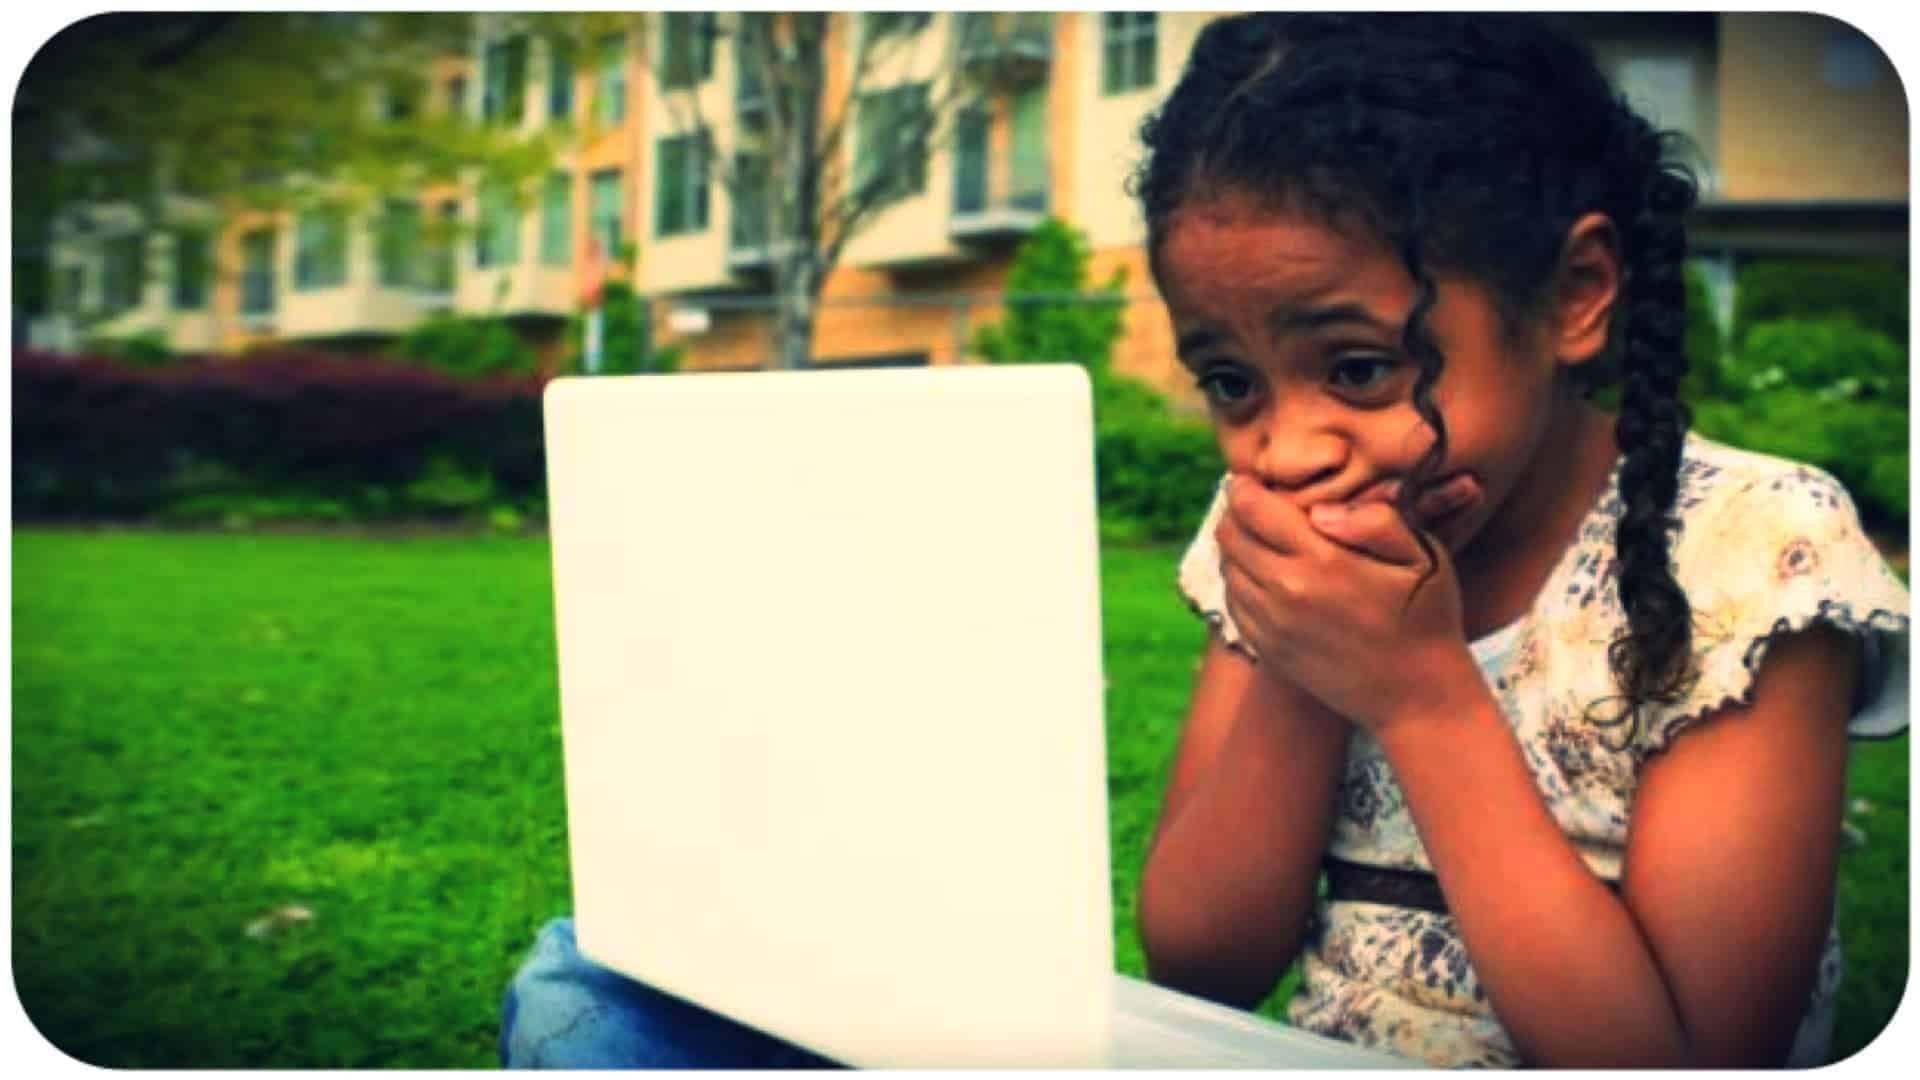 Young girl sitting on the grass in front of a row of buildings with a laptop open on her lap. she has her hands clasped over her mouth and she looks scared